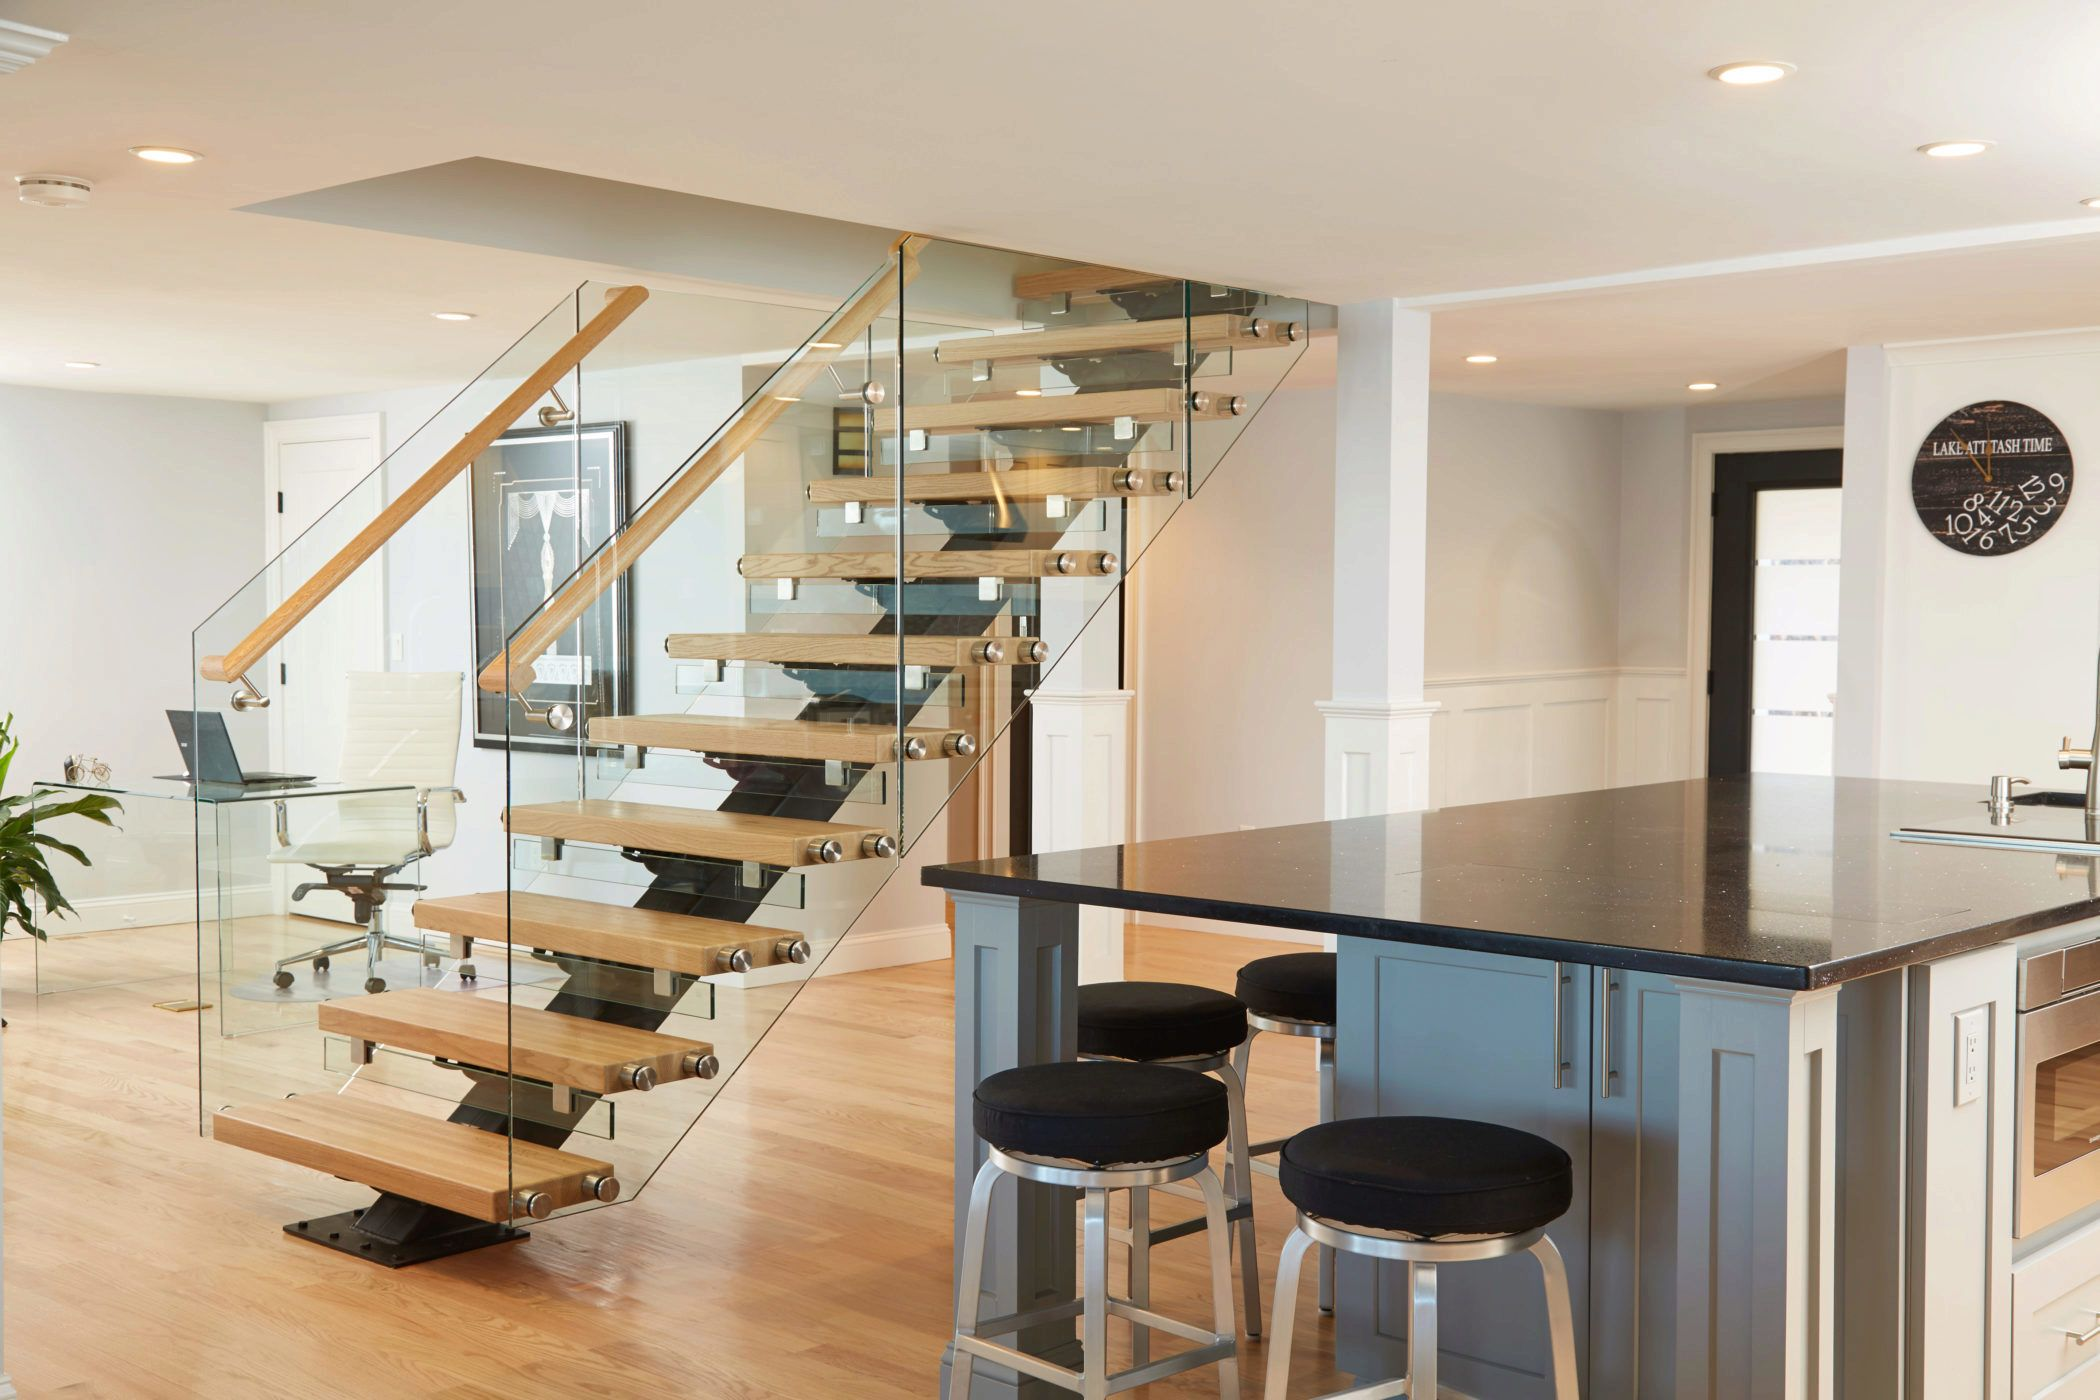 Best Viewrail Floating Stairs And Modern Railing For Stairs 640 x 480